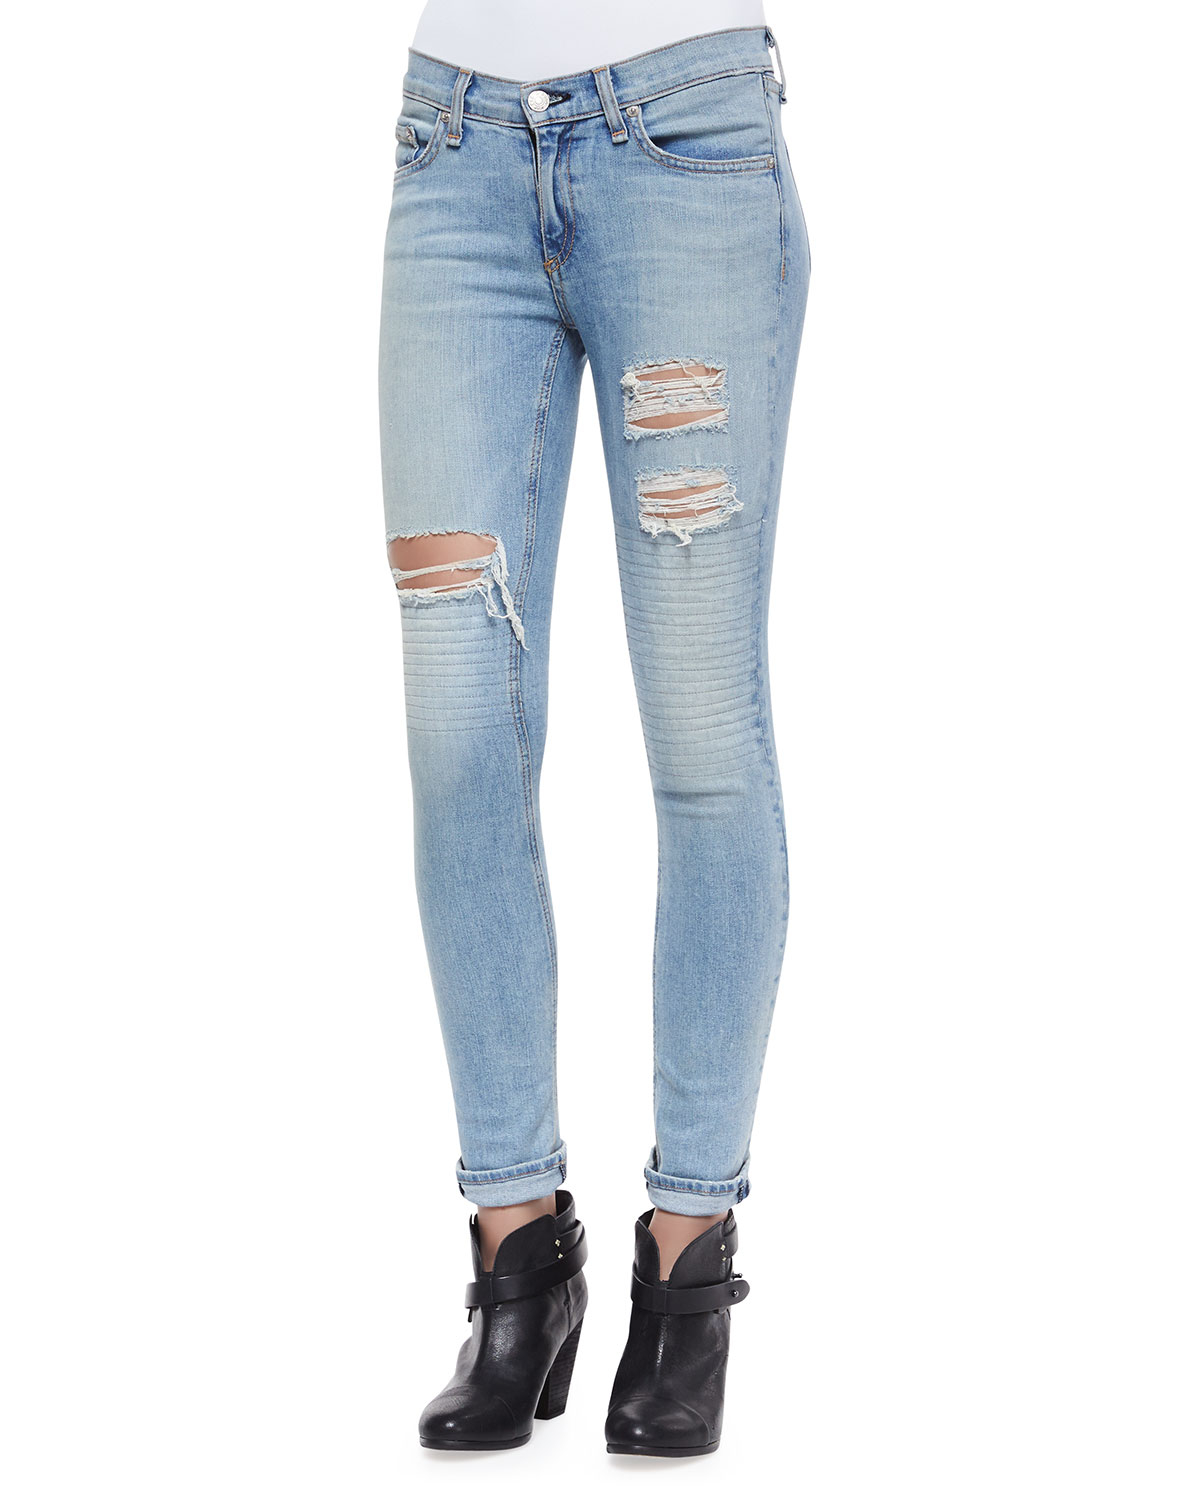 Take your look to the next level this season with a piece from Shopbop's collection of stylish ripped skinny jeans. Casual, yet elegant, these ripped skinny jeans are the perfect pick for day-to-night.